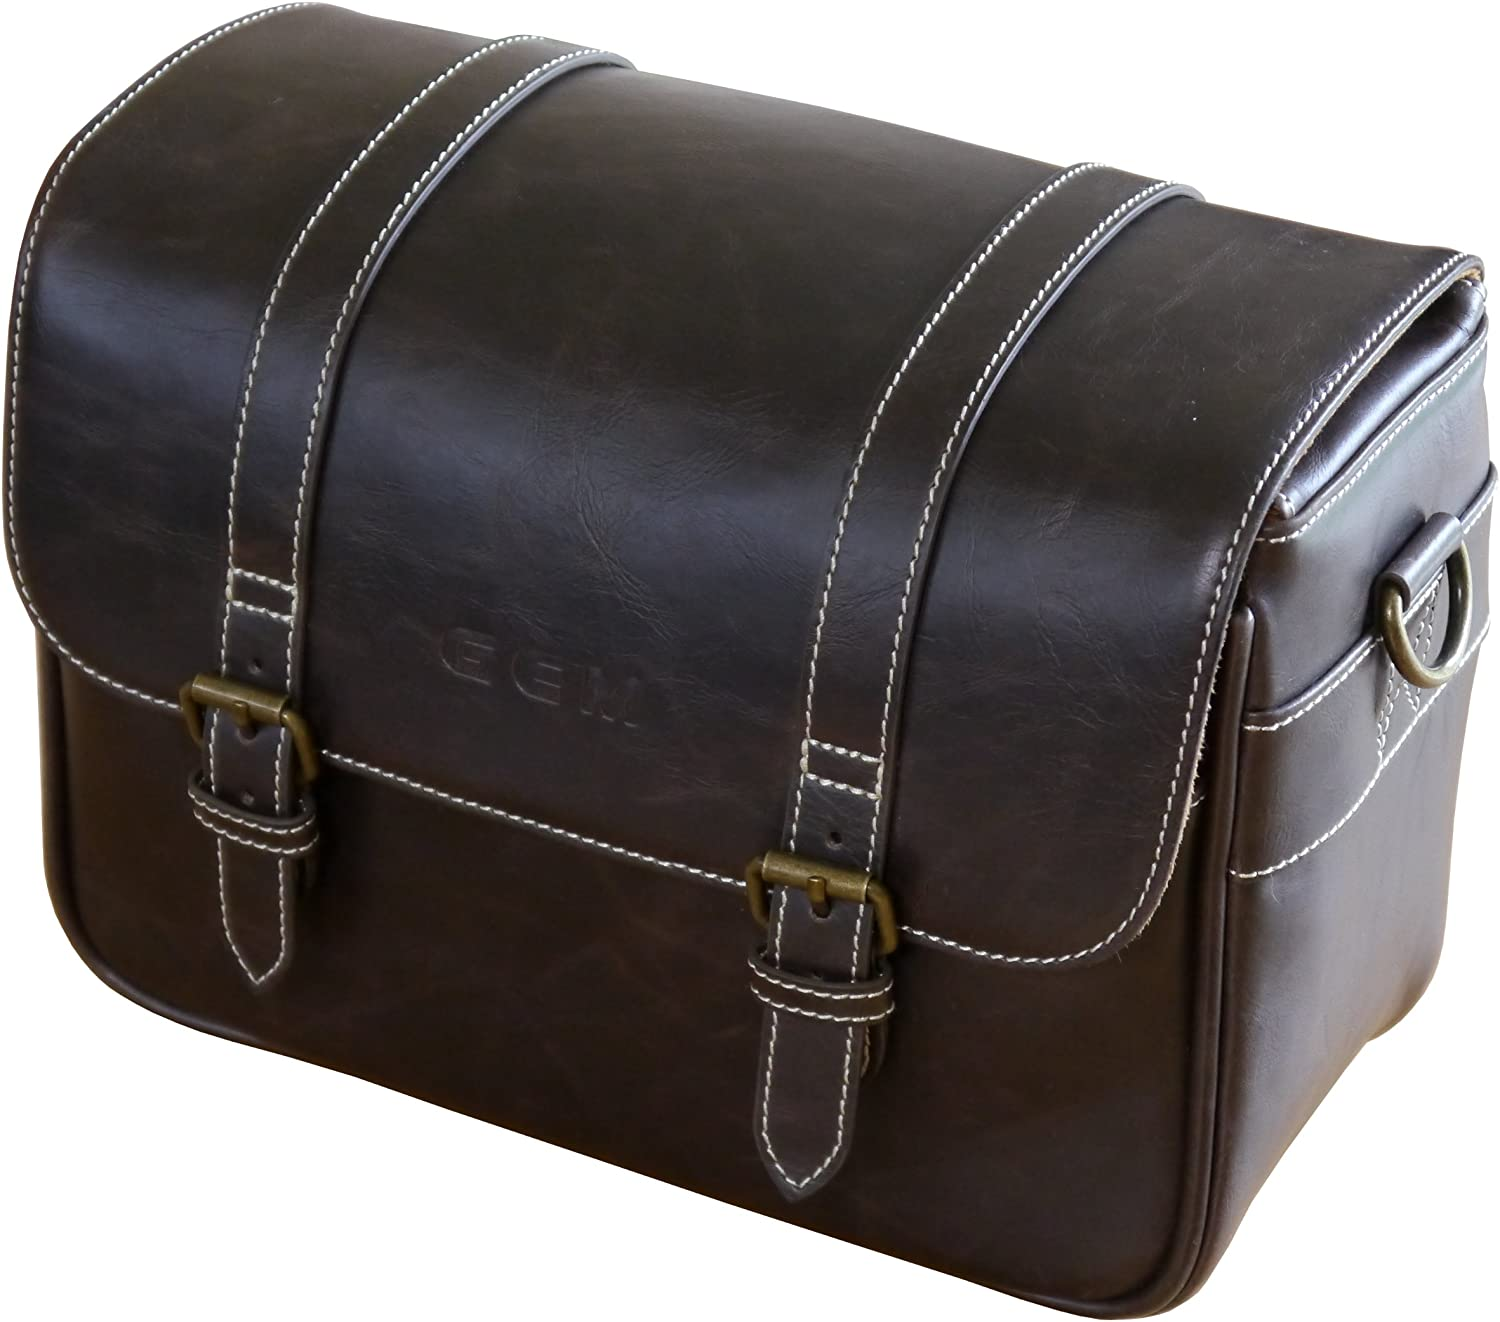 GEM Retro Case for Sony Alpha NEX-5T Compact System Camera Plus up to Two Spare Lenses and Accessories